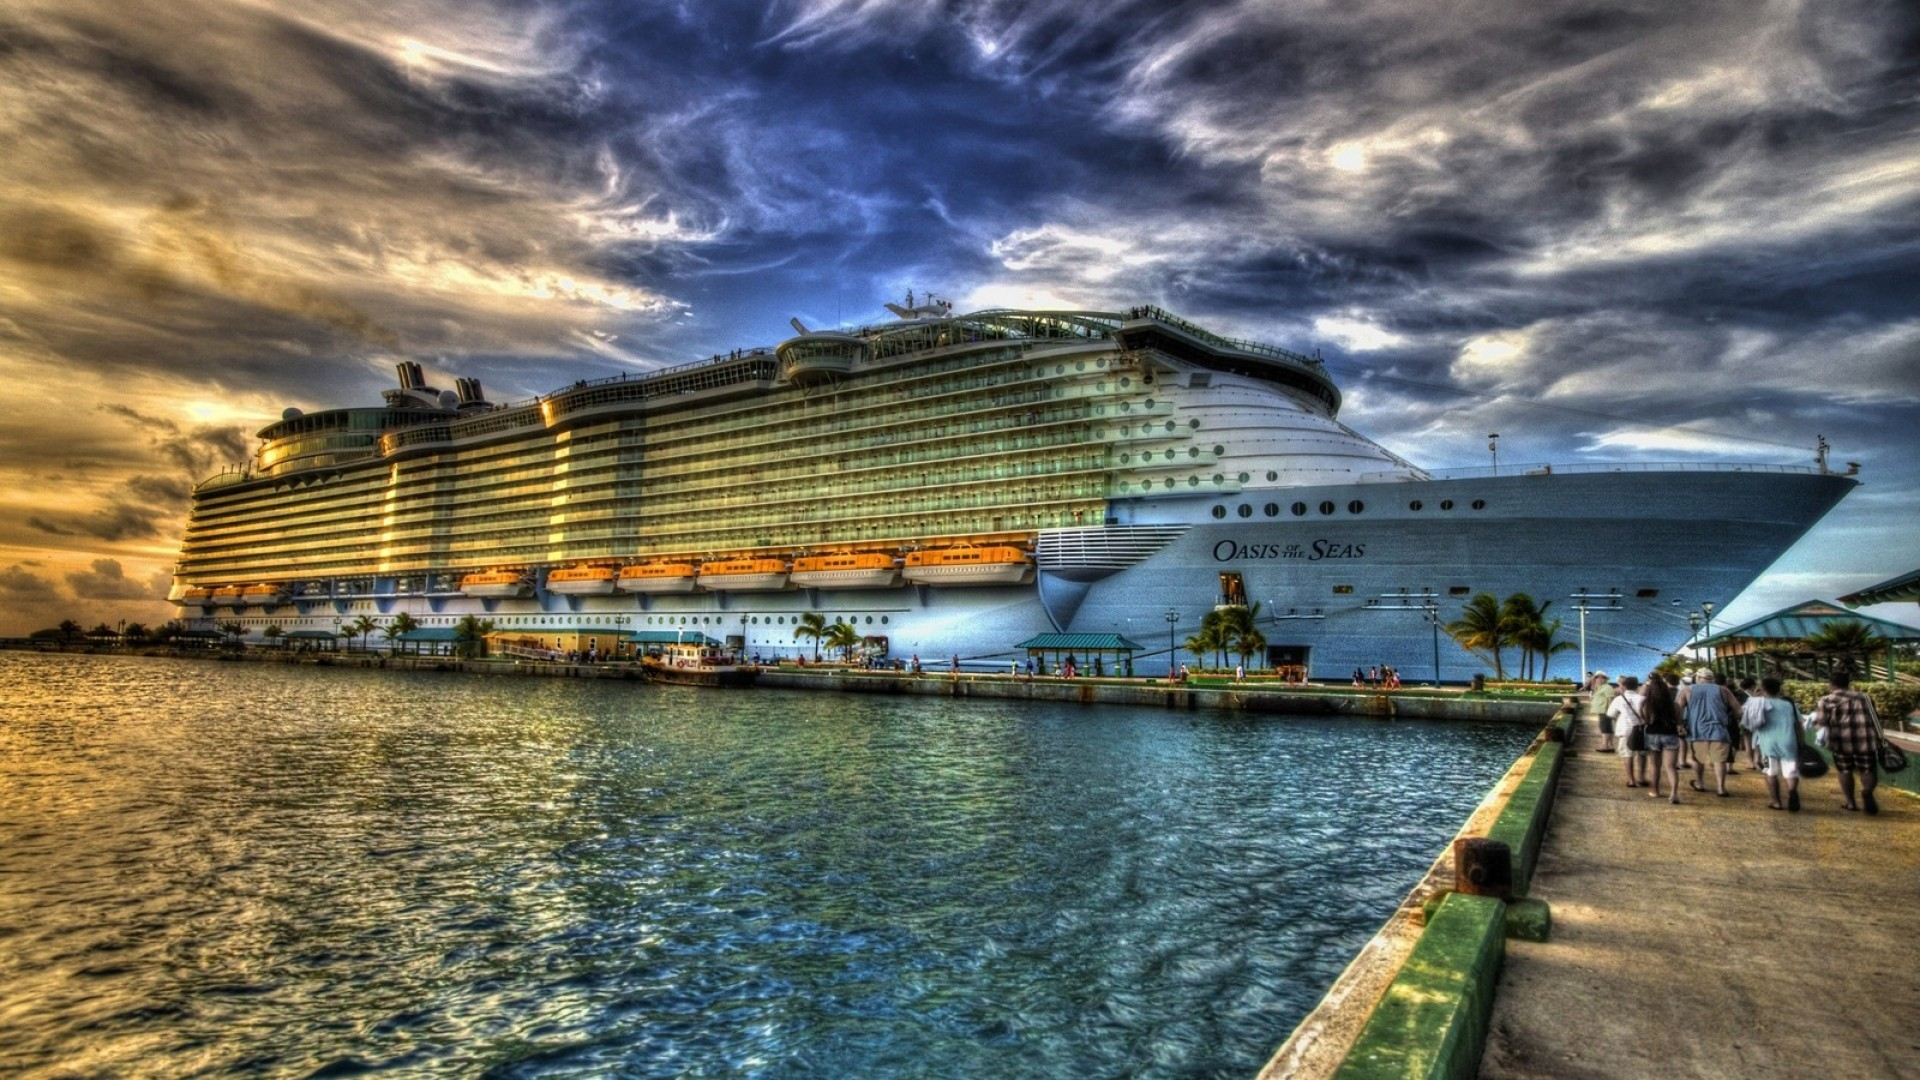 September 18, 2015 By admin Comments Off on Cruise Ship Wallpapers HD .